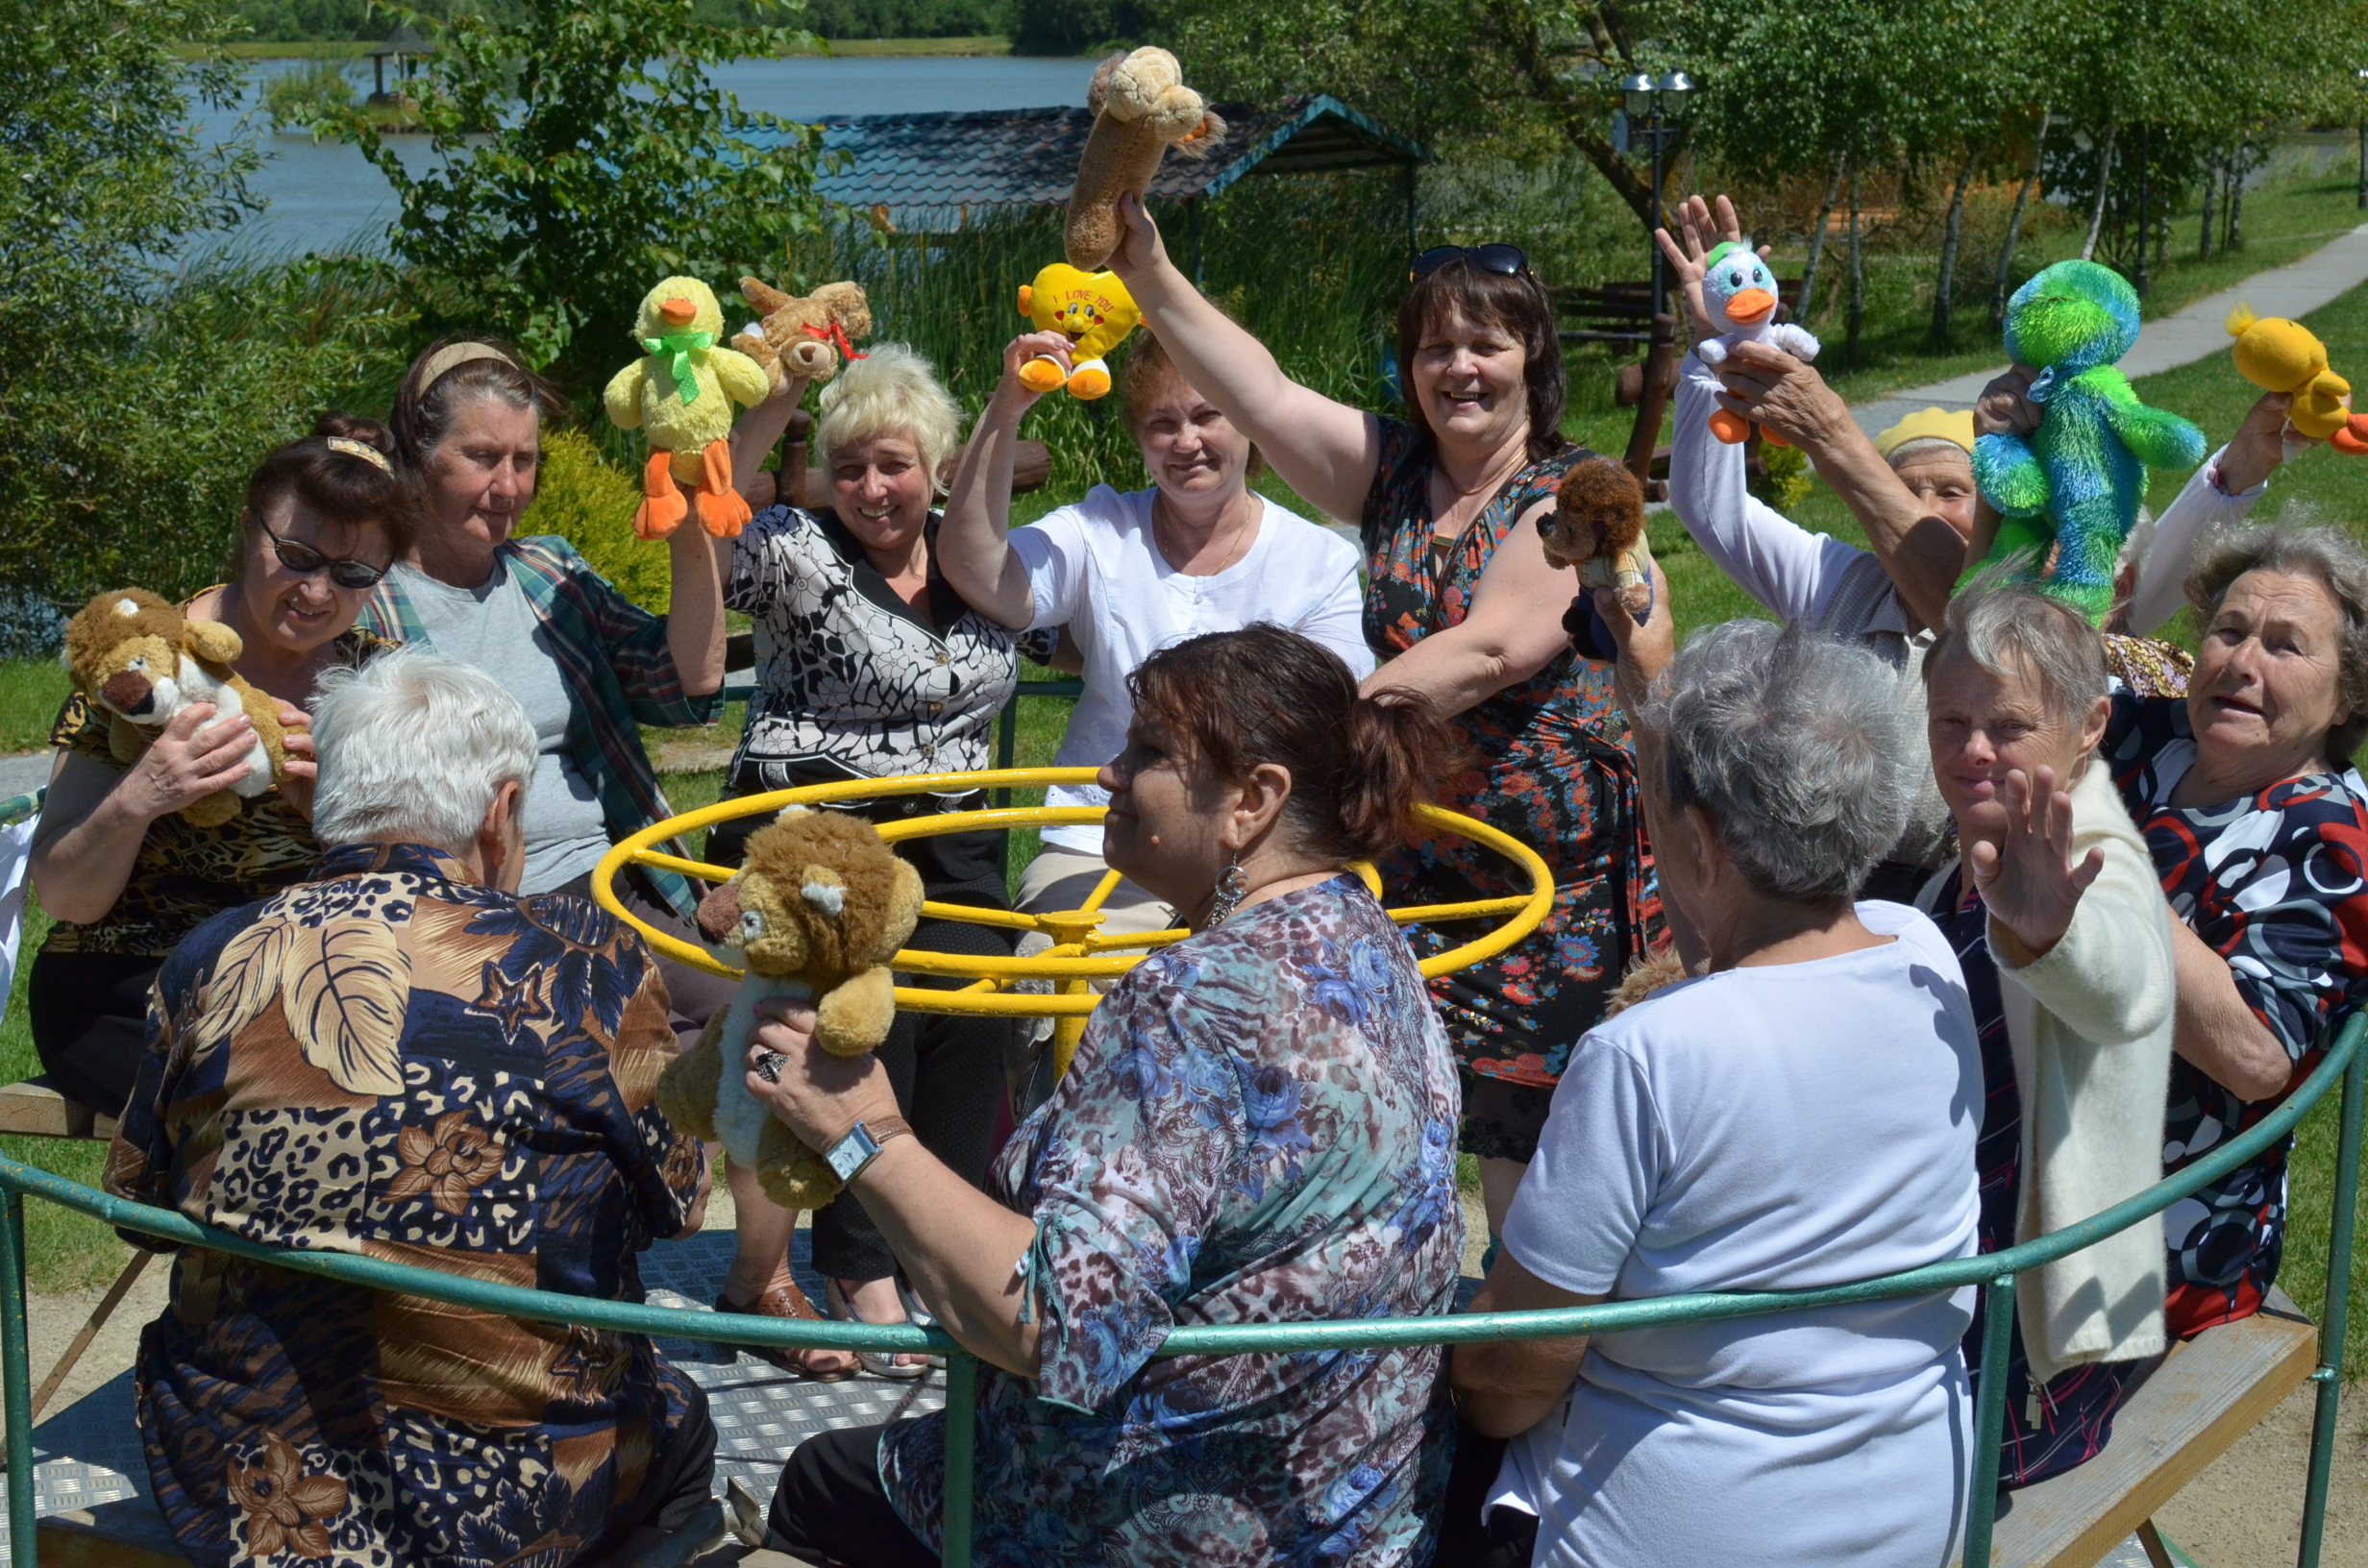 The elderly ladies had a blast on the merry-go-round!